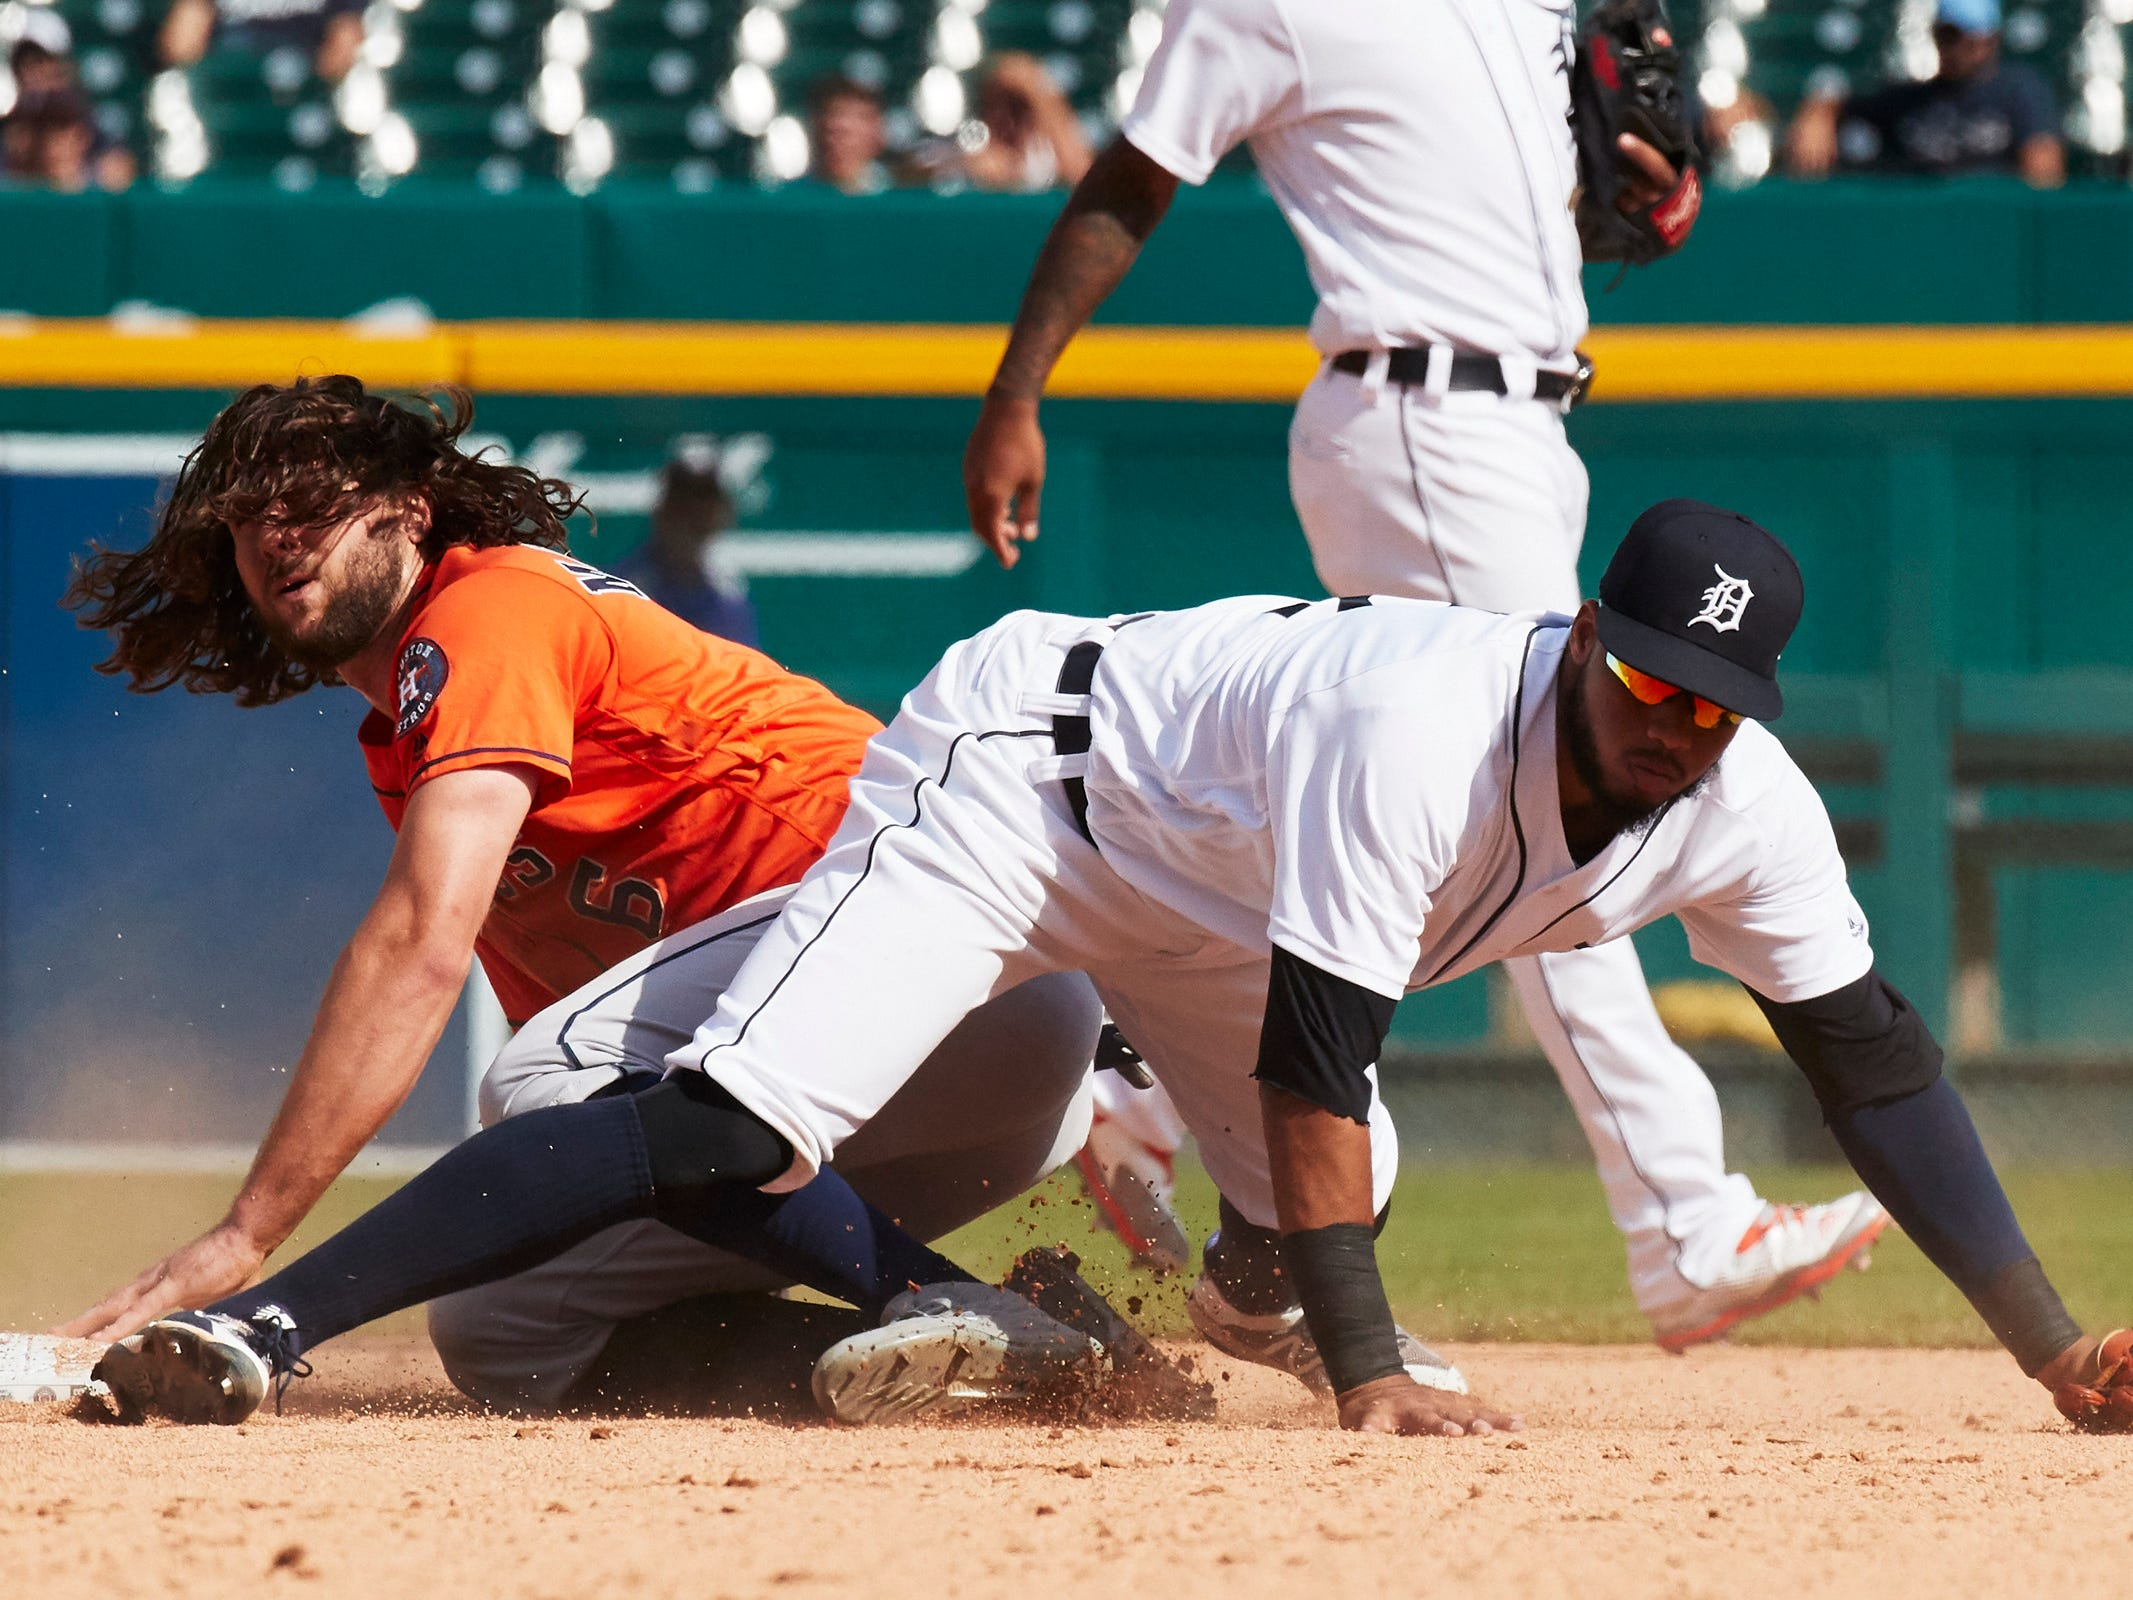 Astros center fielder Jake Marisnick is tagged out by Tigers second baseman Dawel Lugo while trying to steal second in the ninth inning of the Tigers' 5-4 loss tot he Astros on Wednesday, Sept. 12, 2018, at Comerica Park.